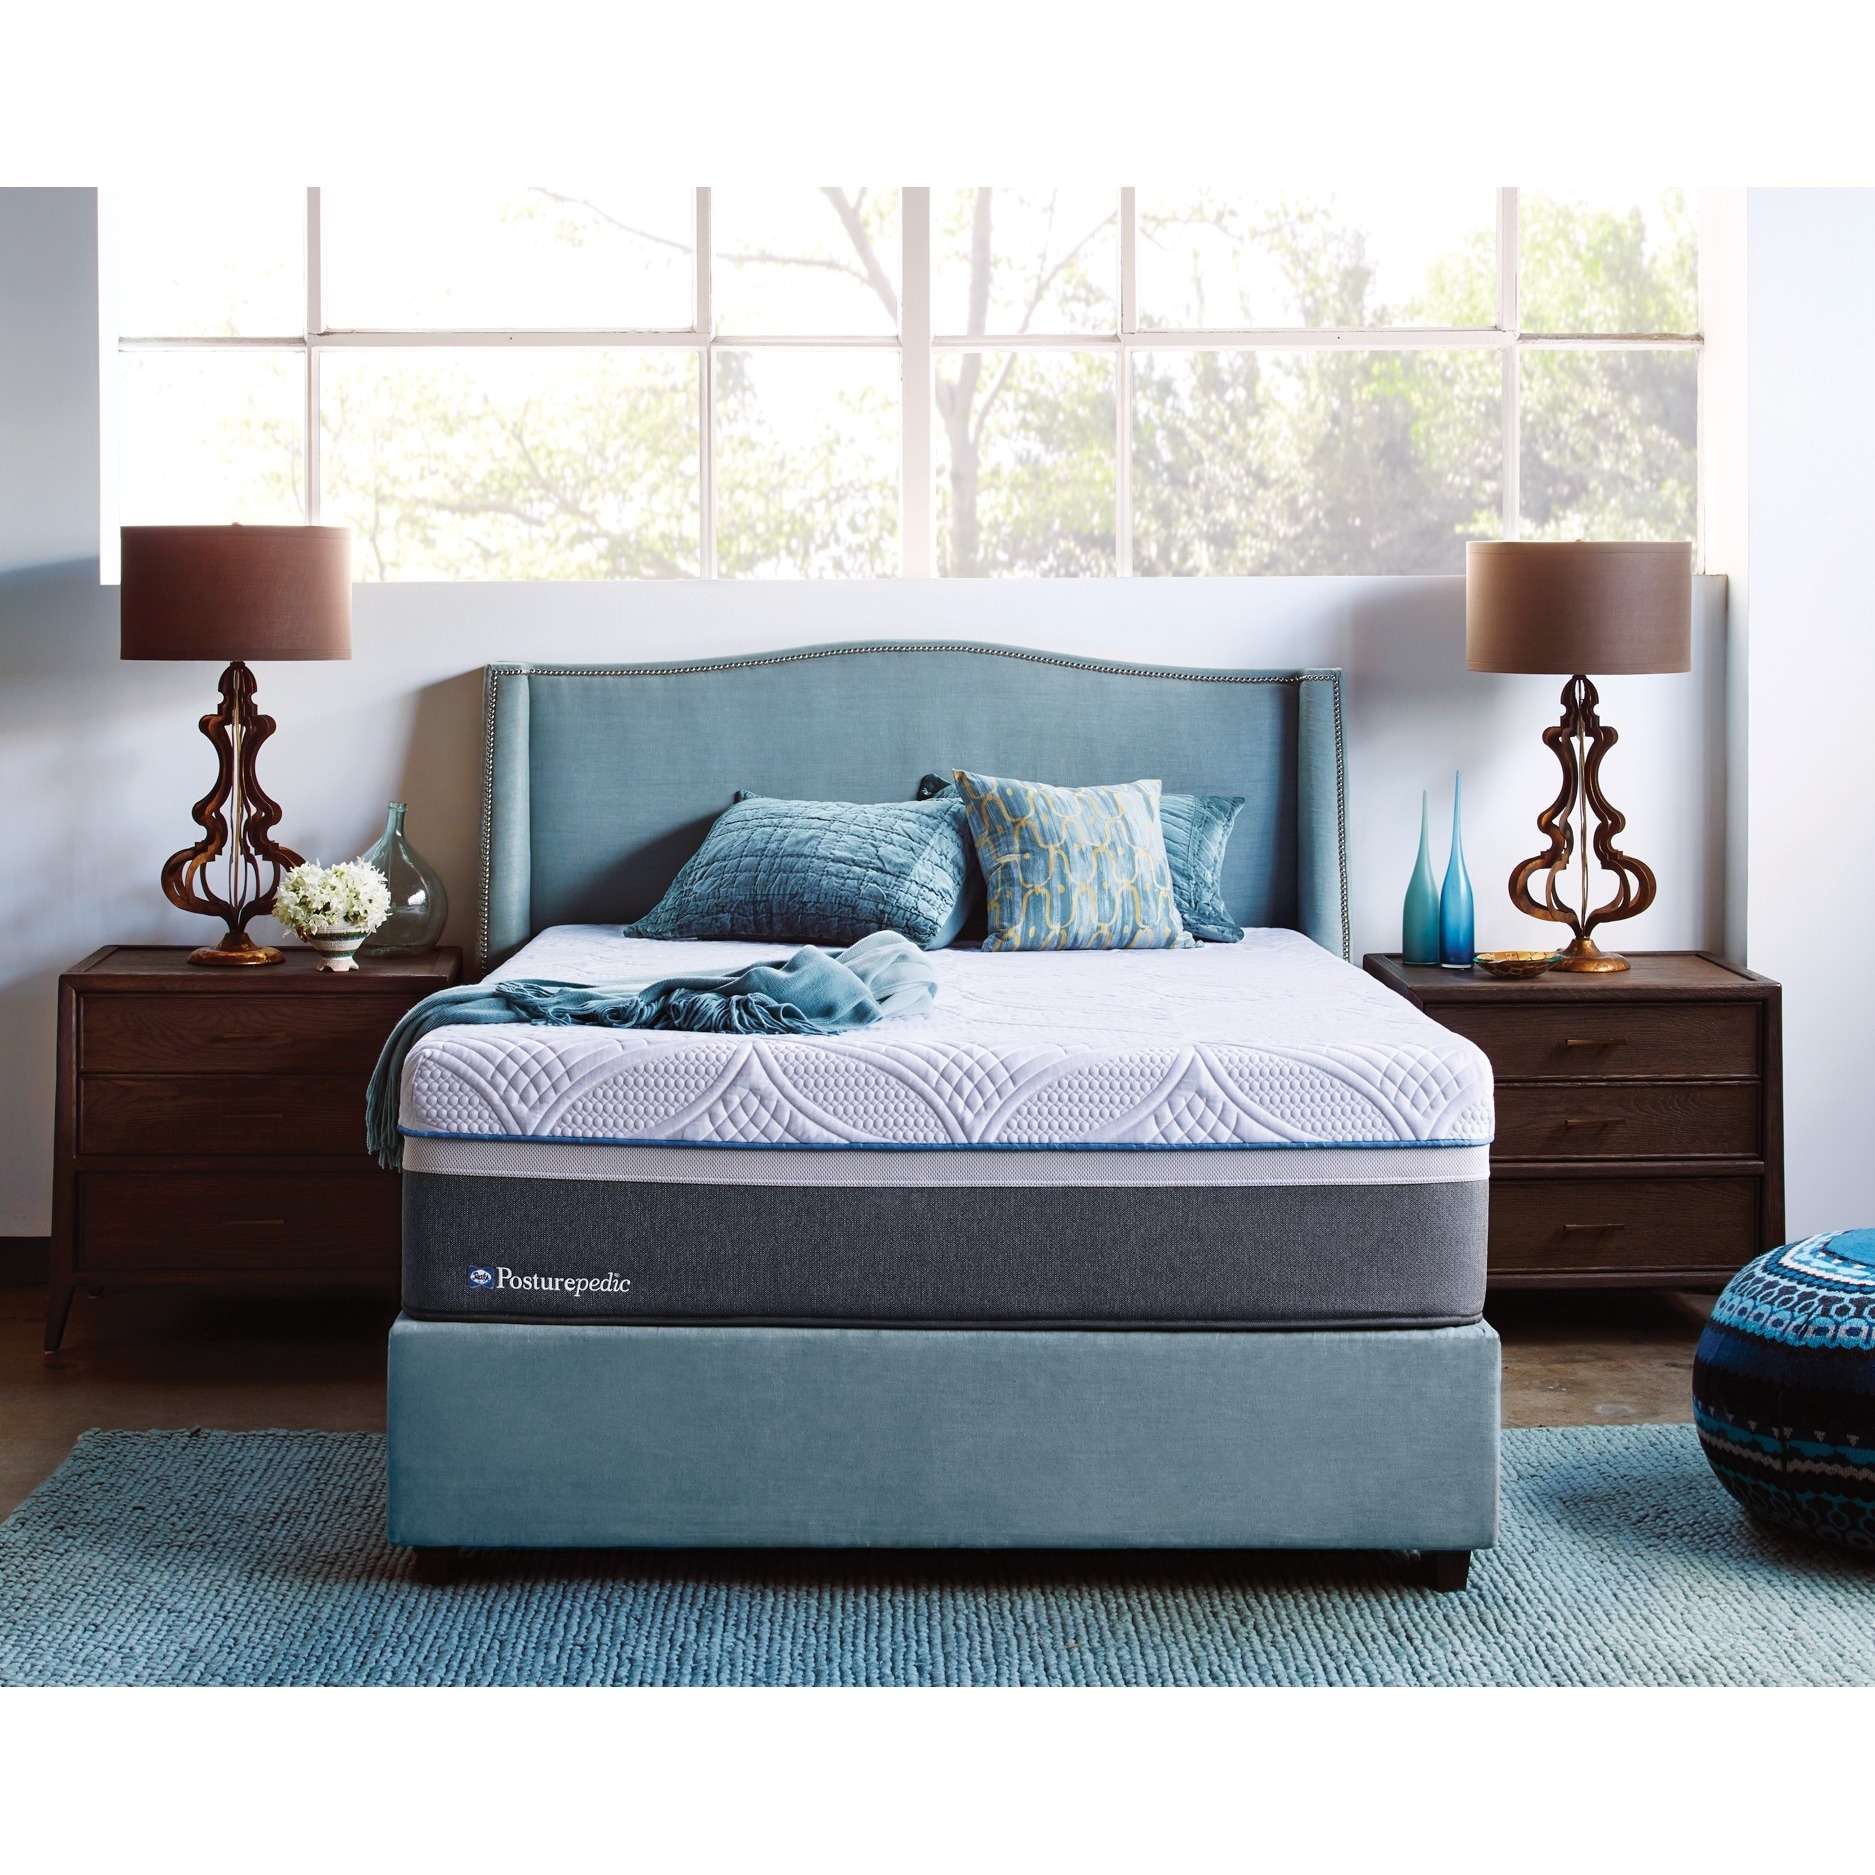 Sealy Posturepedic Hybrid Gold Ultra Plush Queen Mattress...